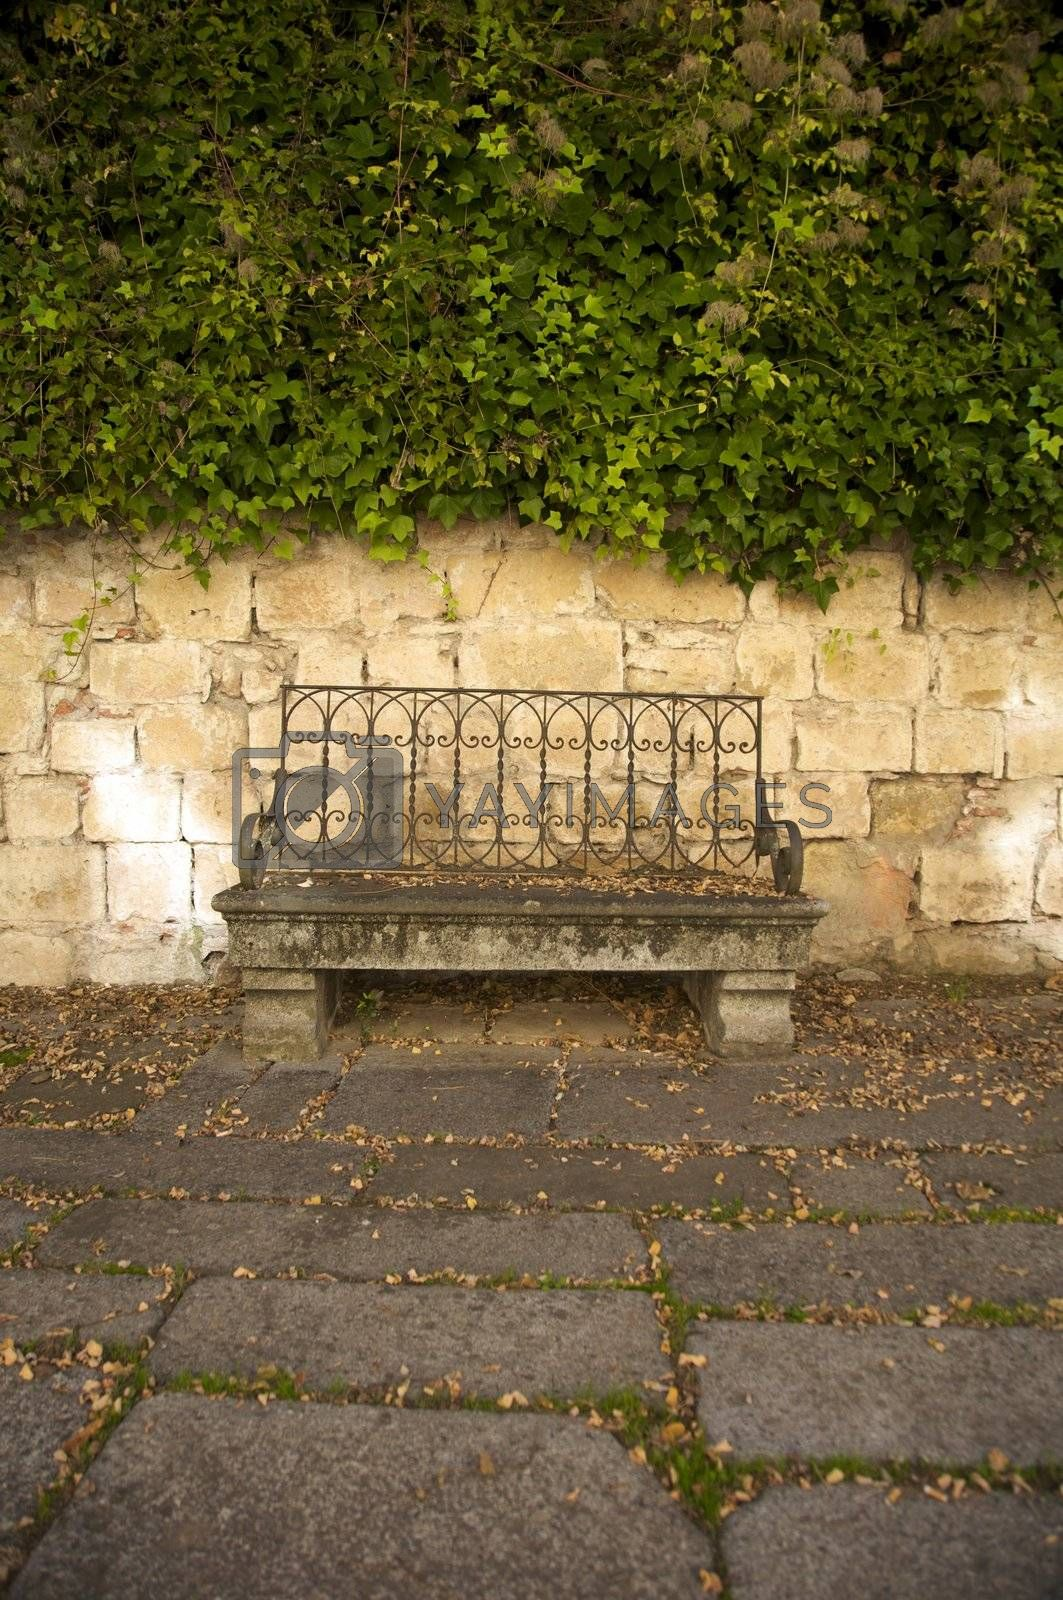 Royalty free image of old stone bench by quintanilla